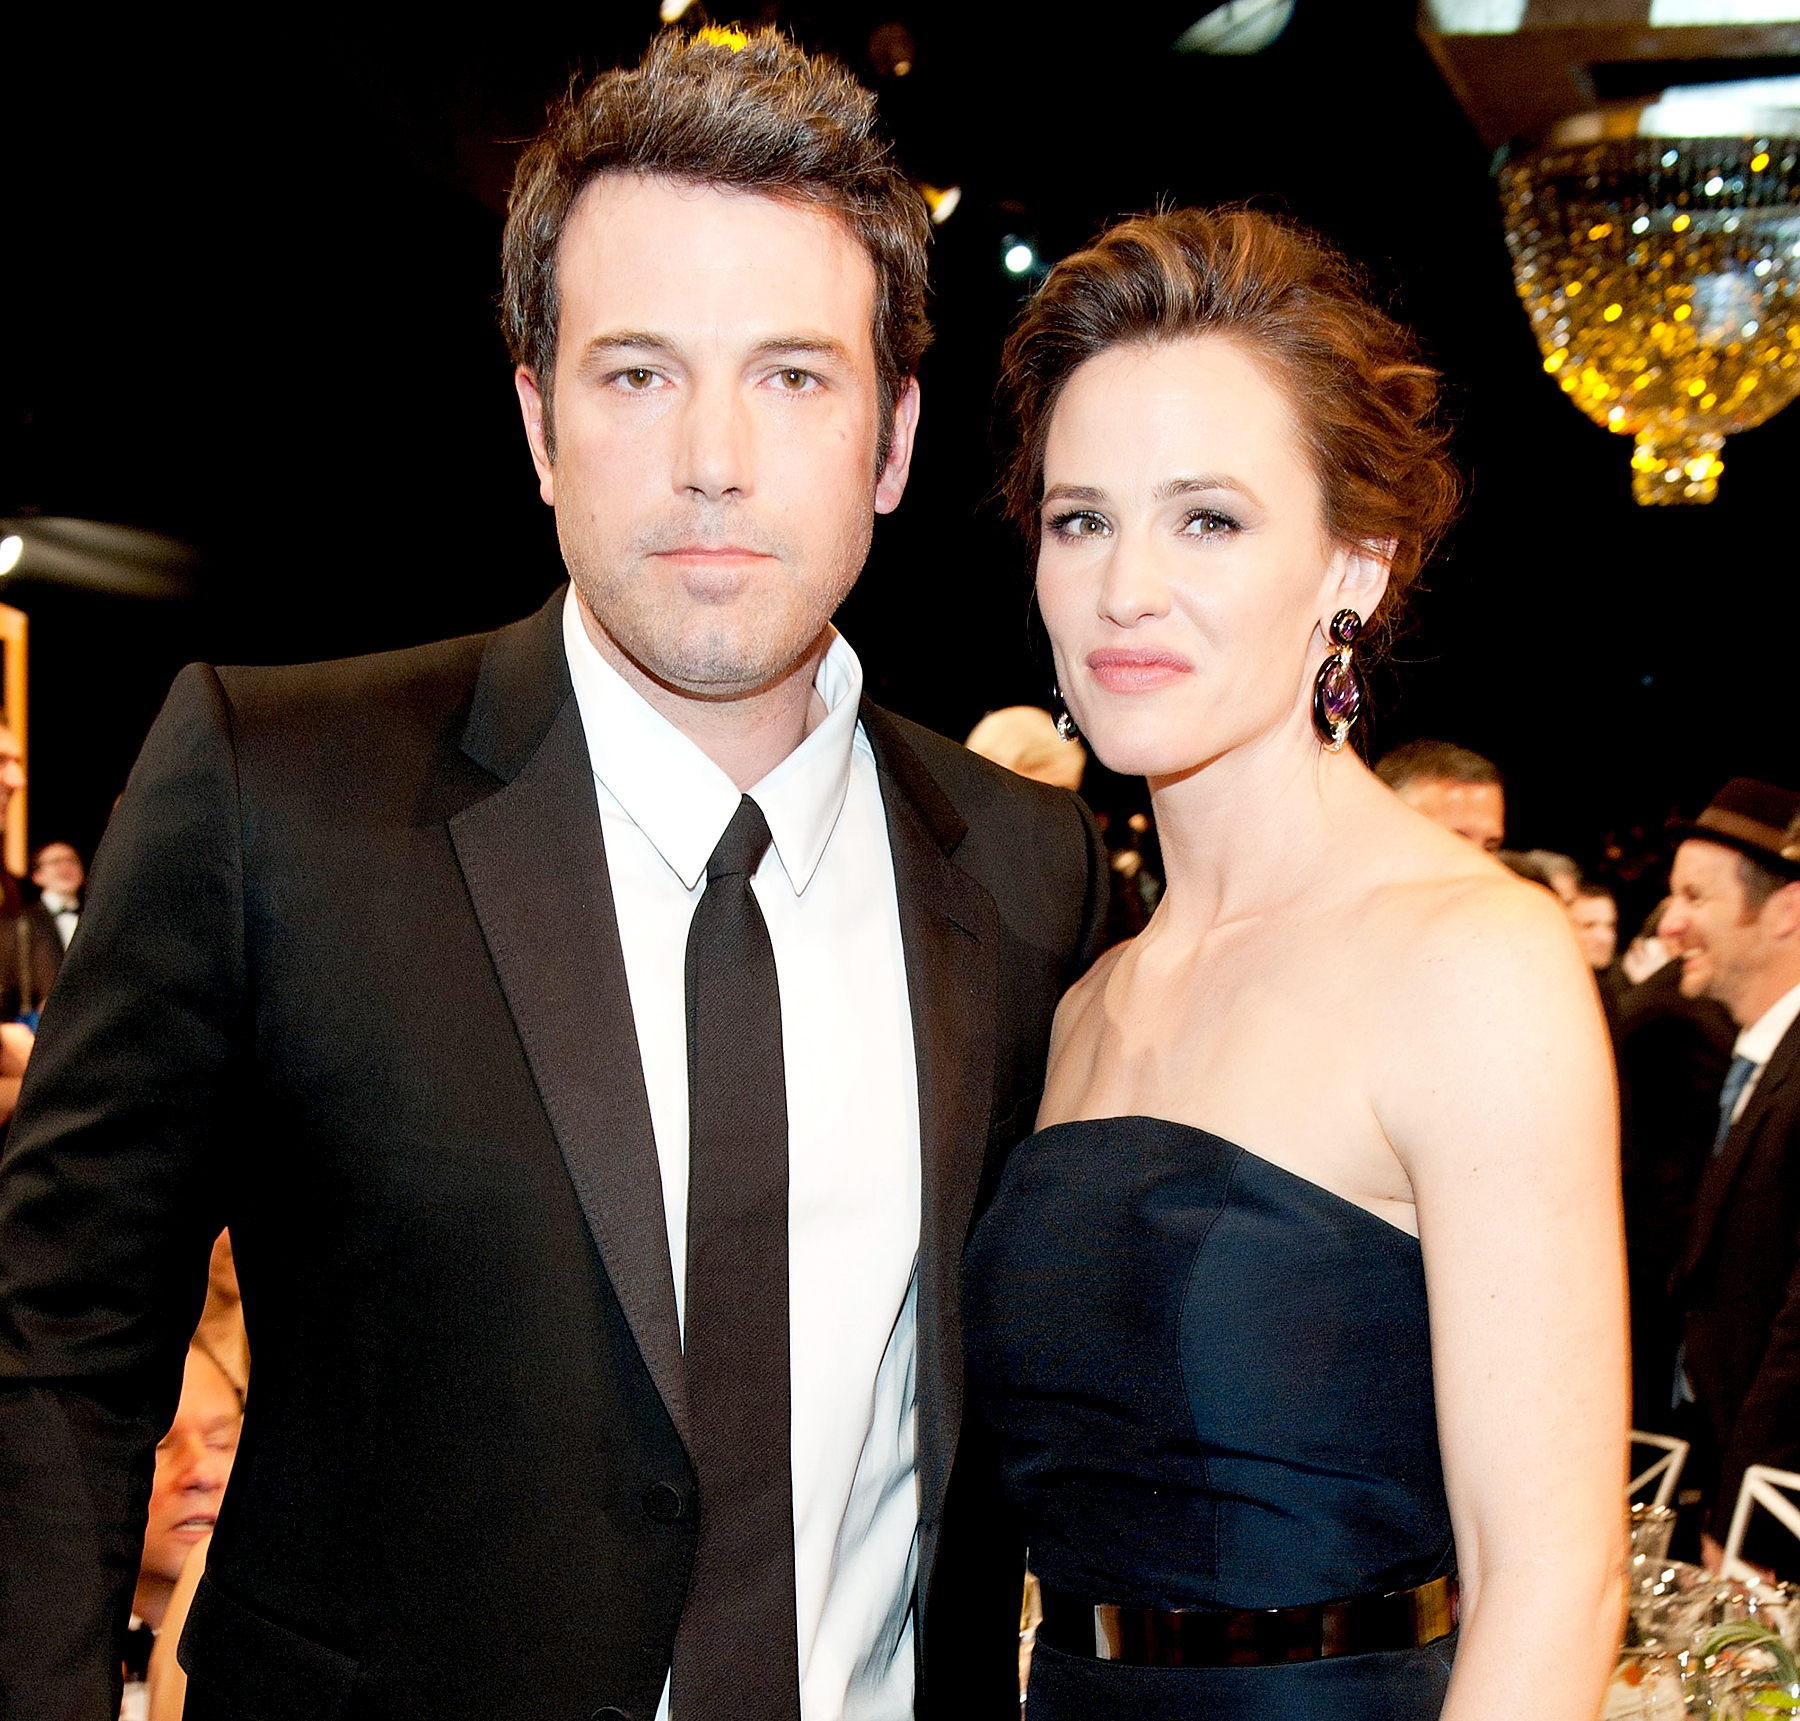 Ben Affleck and Jennifer Garner attend the 20th Annual Screen Actors Guild Awards at The Shrine Auditorium on January 18, 2014 in Los Angeles, California.